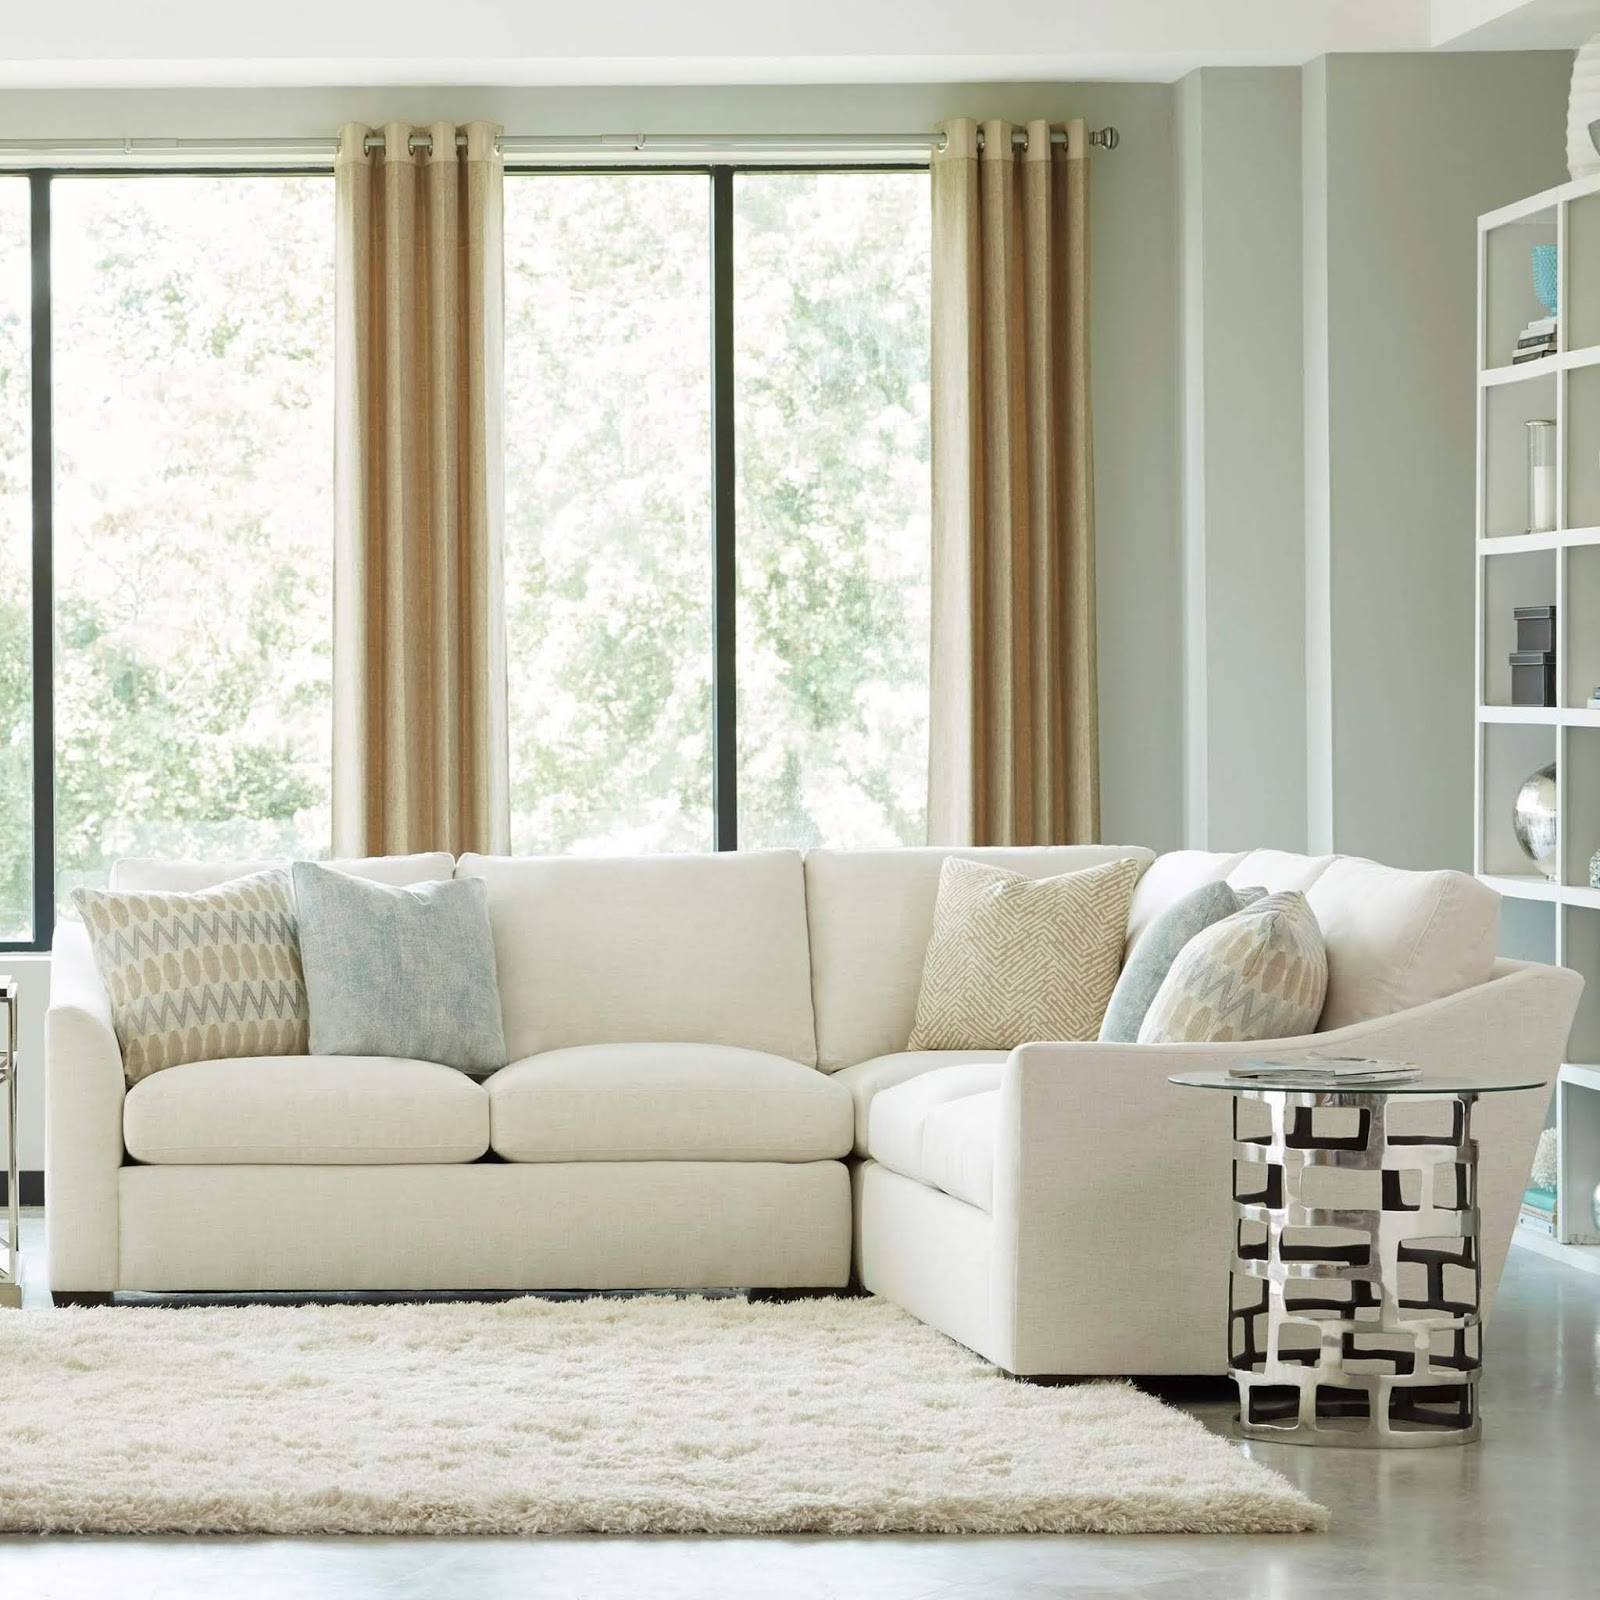 Sofa With Glass And Metal Side Table